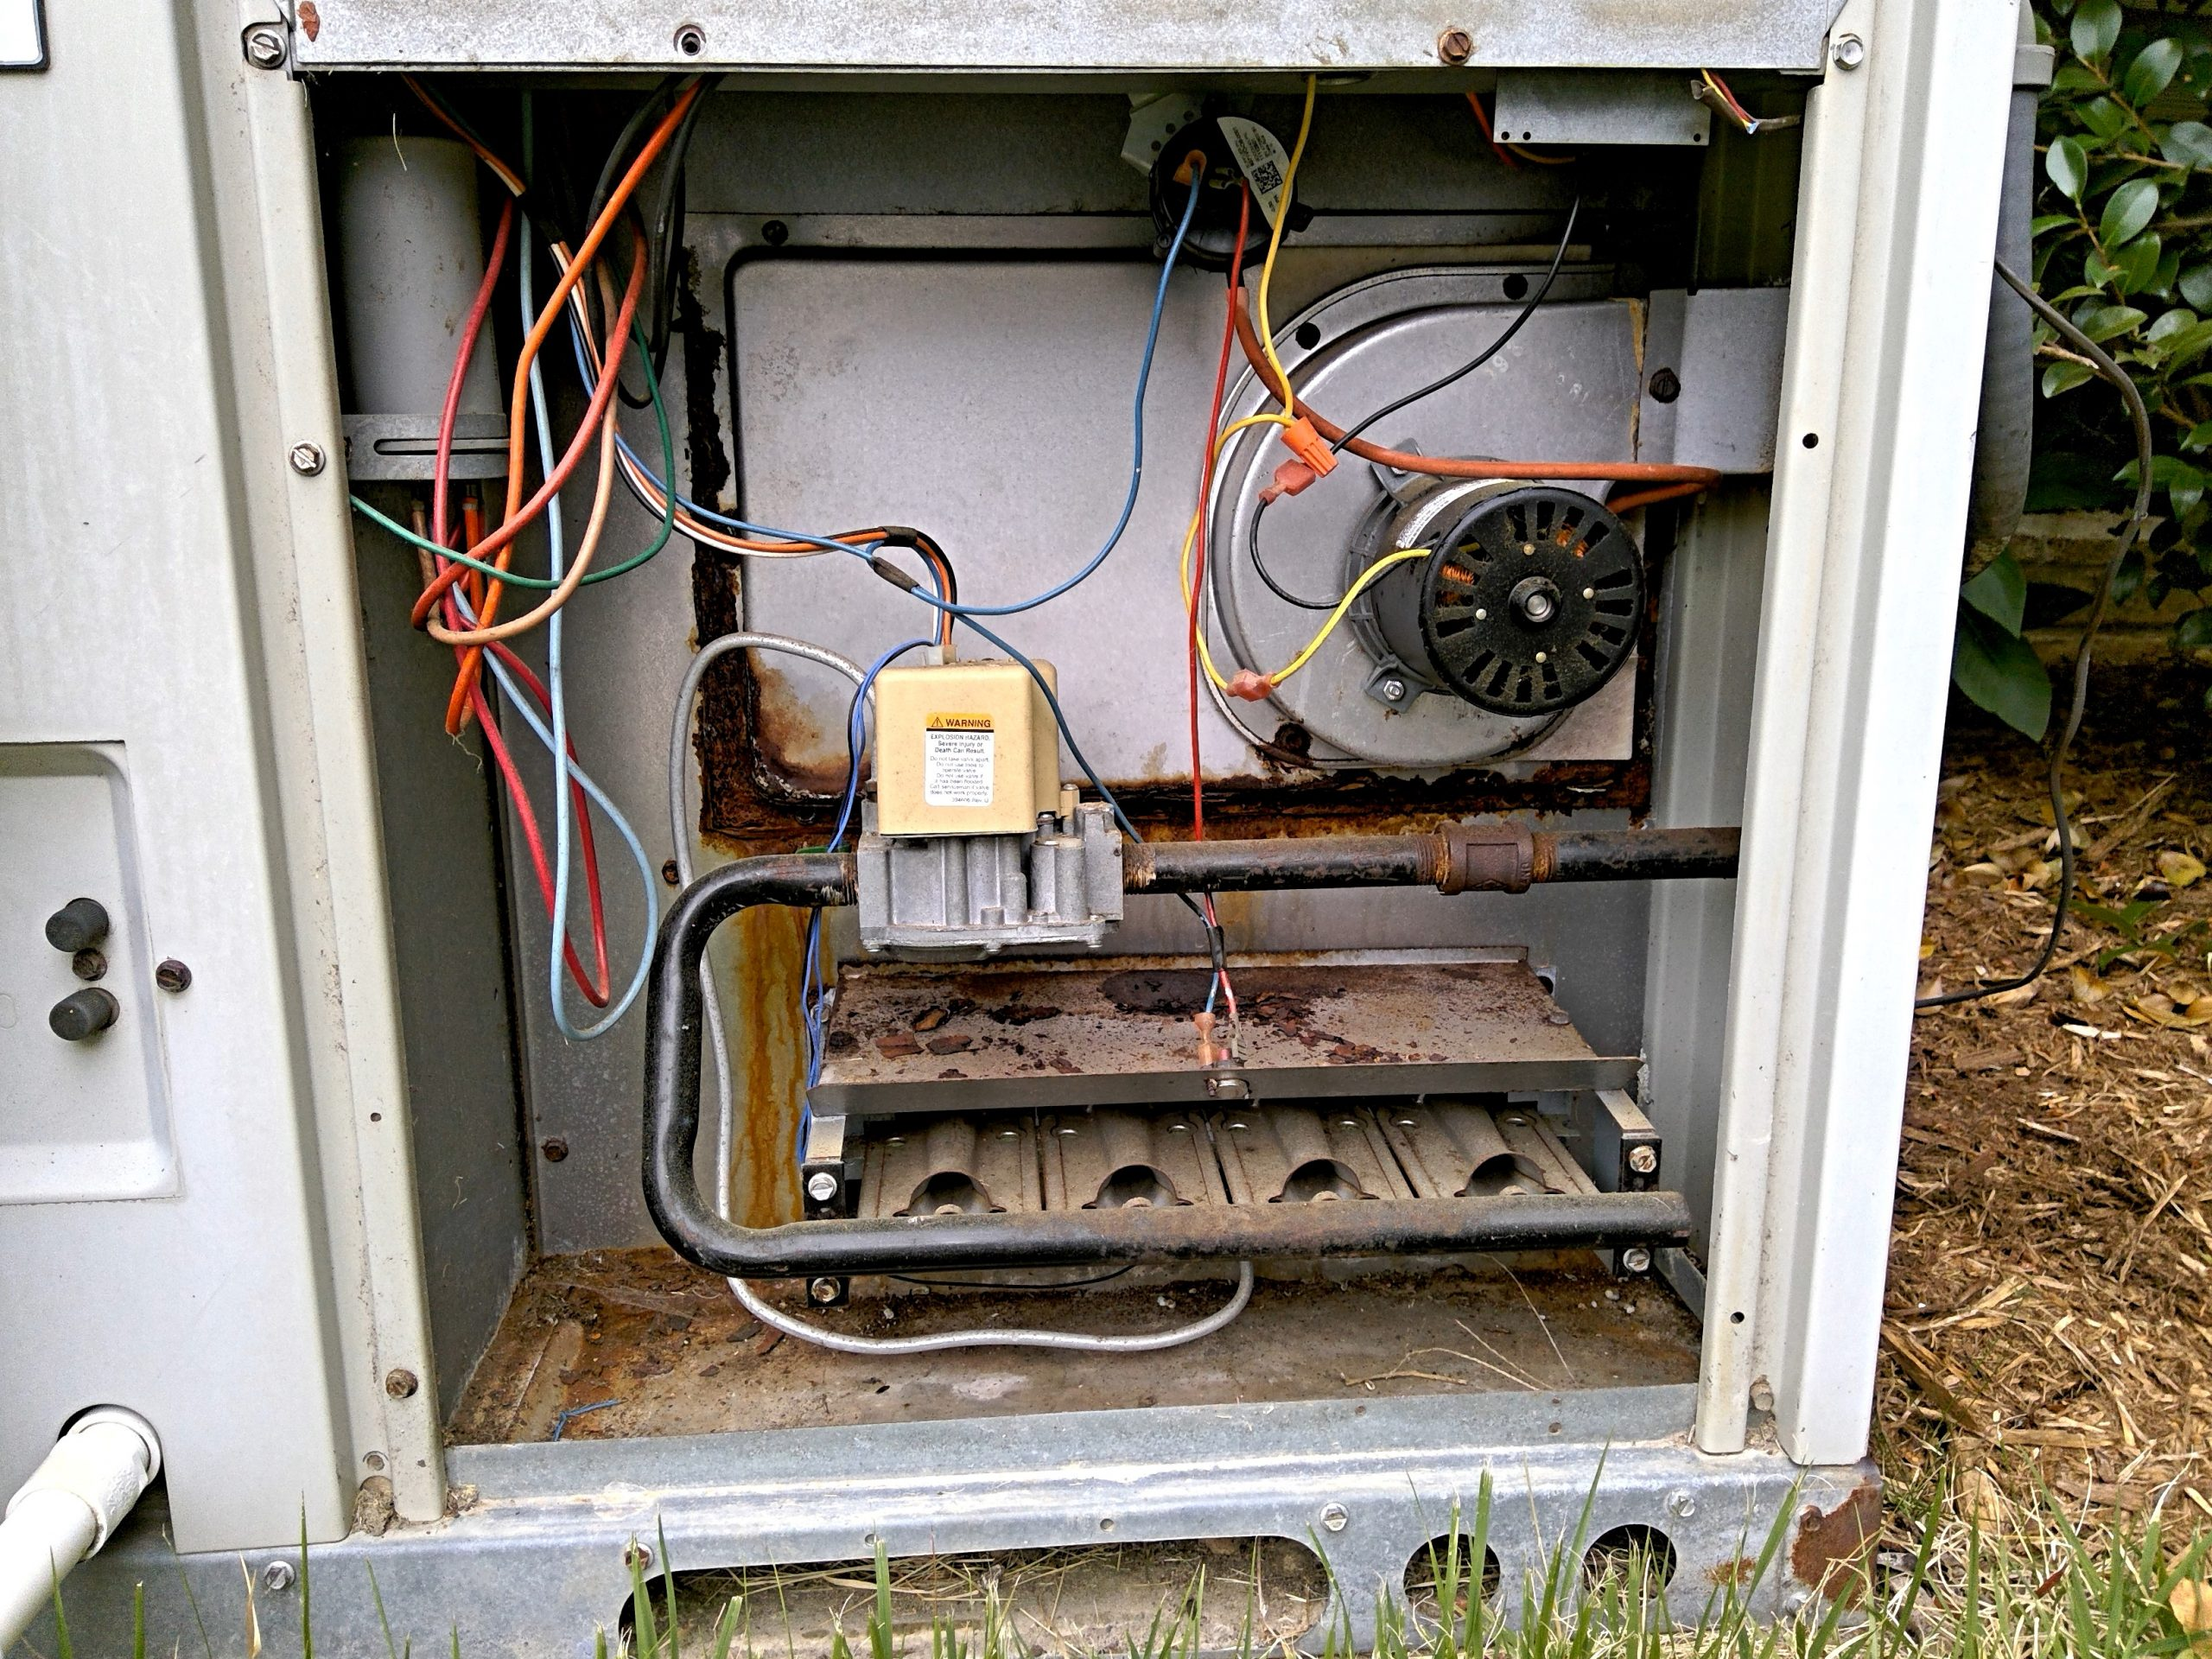 Burner compartment of a package unit furnace